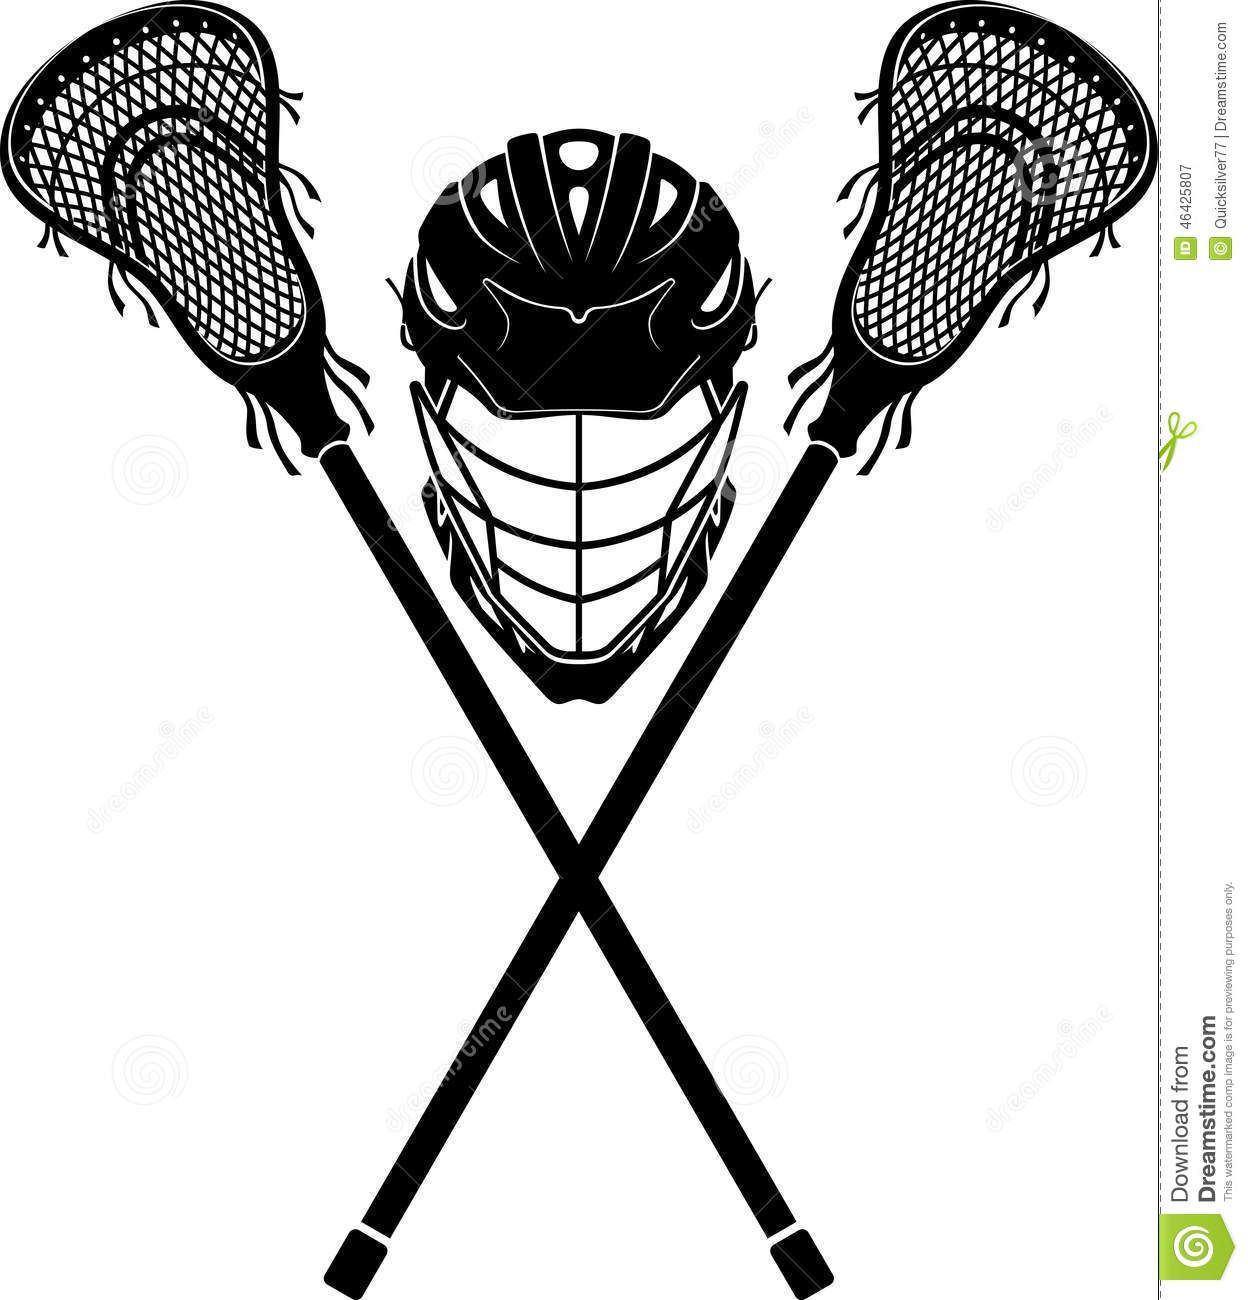 Lacrosse Sports Equipment Front View Silhouette Symbol 46425807 Jpg 1248 1300 Lacrosse Equipment Lacrosse Lacrosse Boys